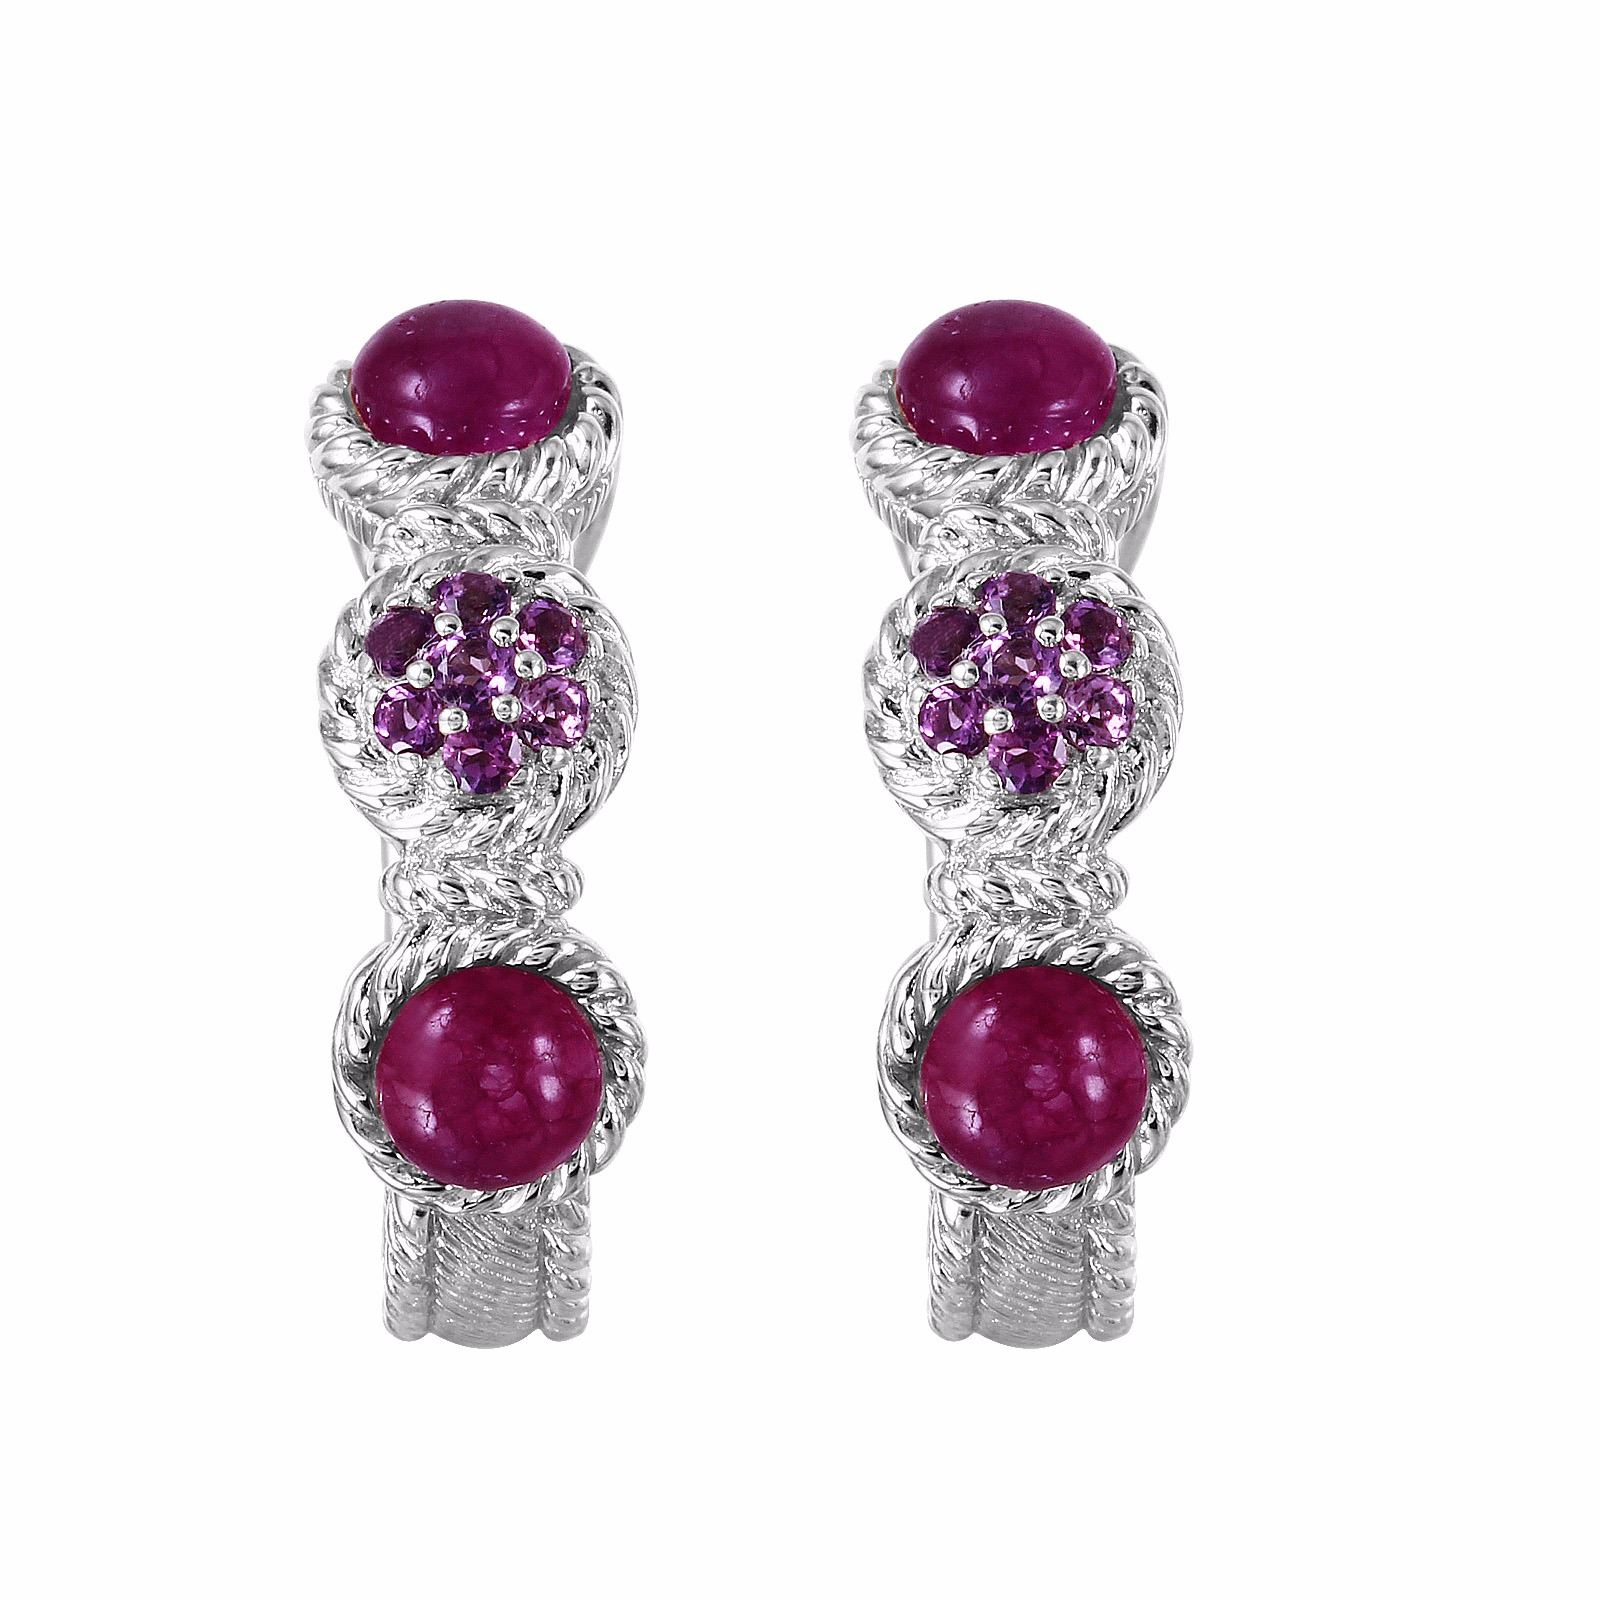 Image 1 Judith Ripka Sterling Amethyst Hoop Earrings 1691